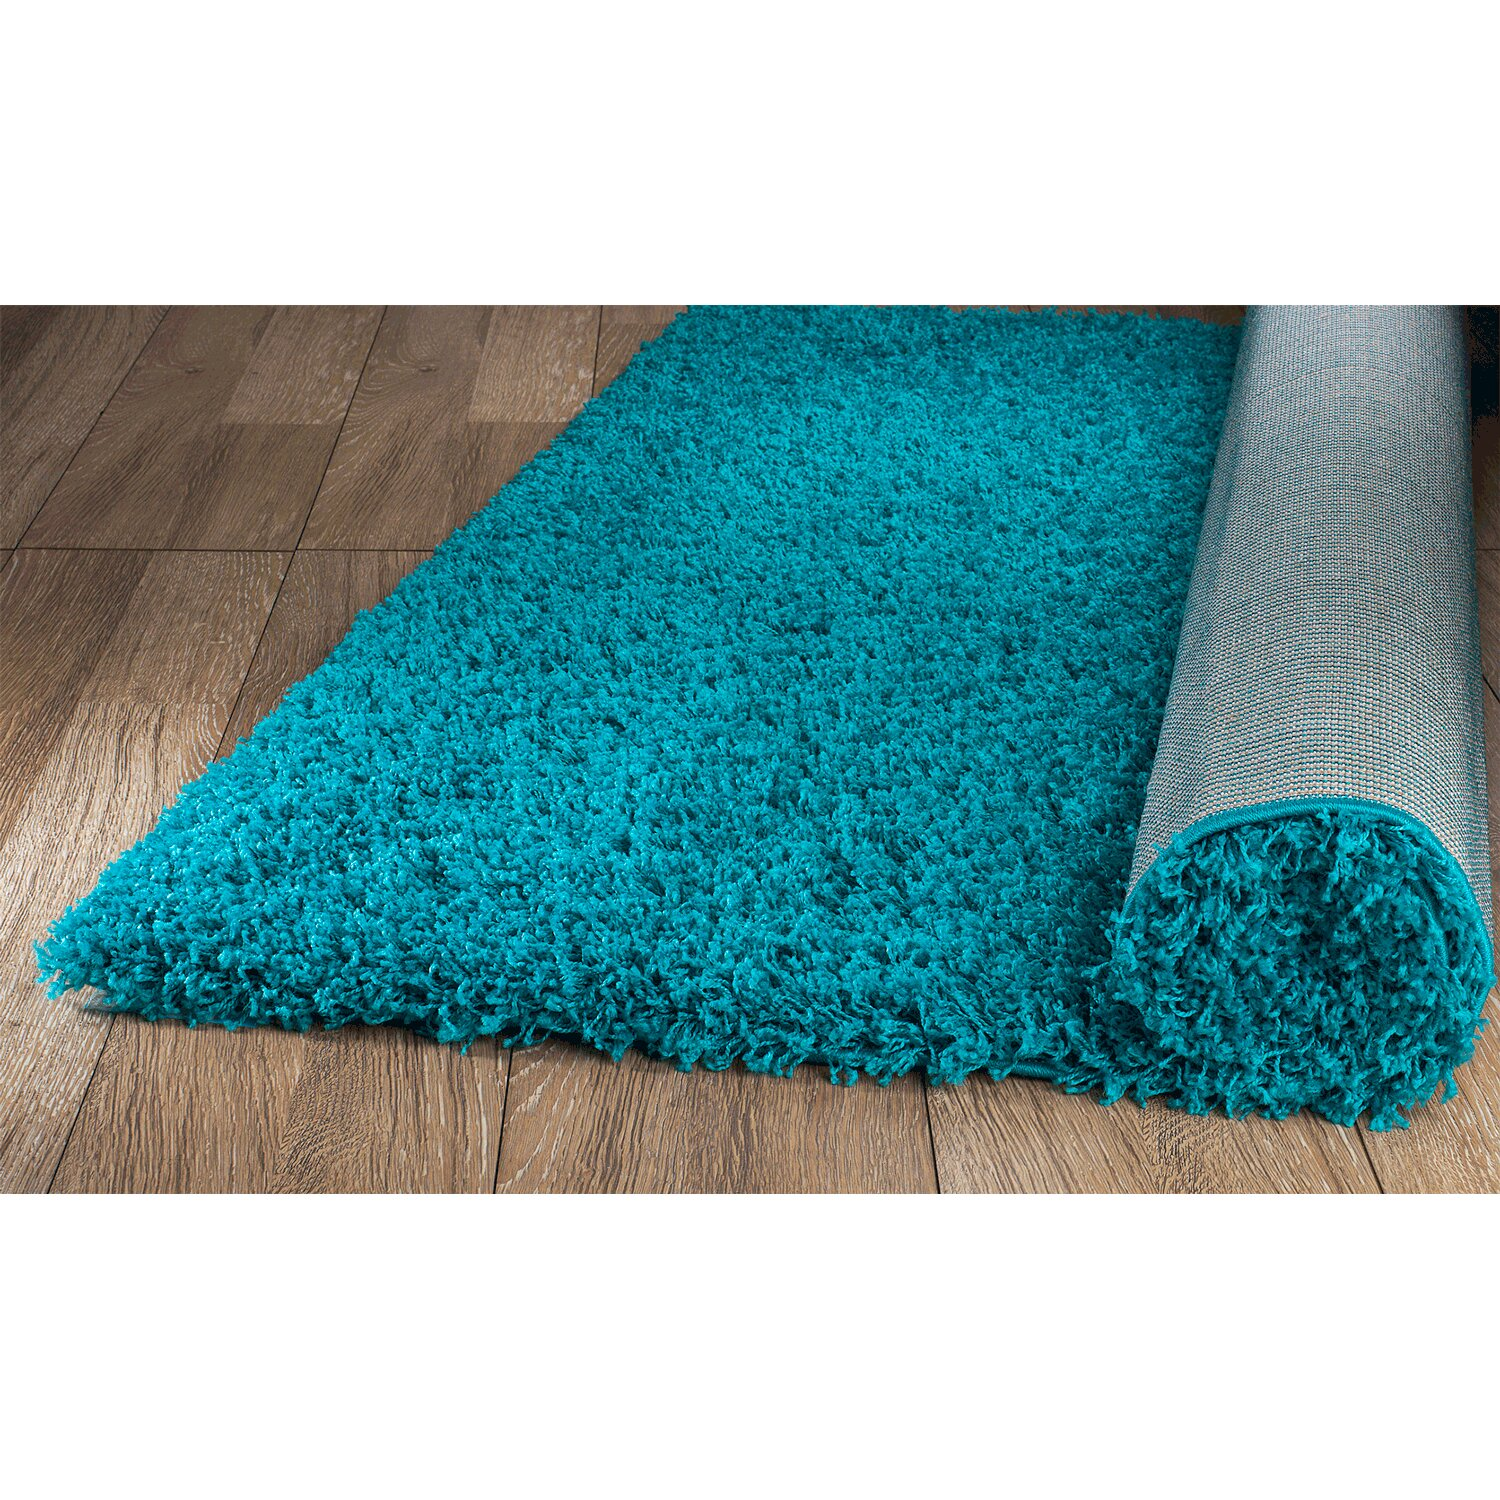 Rug And Decor Inc. Supreme Teal Area Rug & Reviews